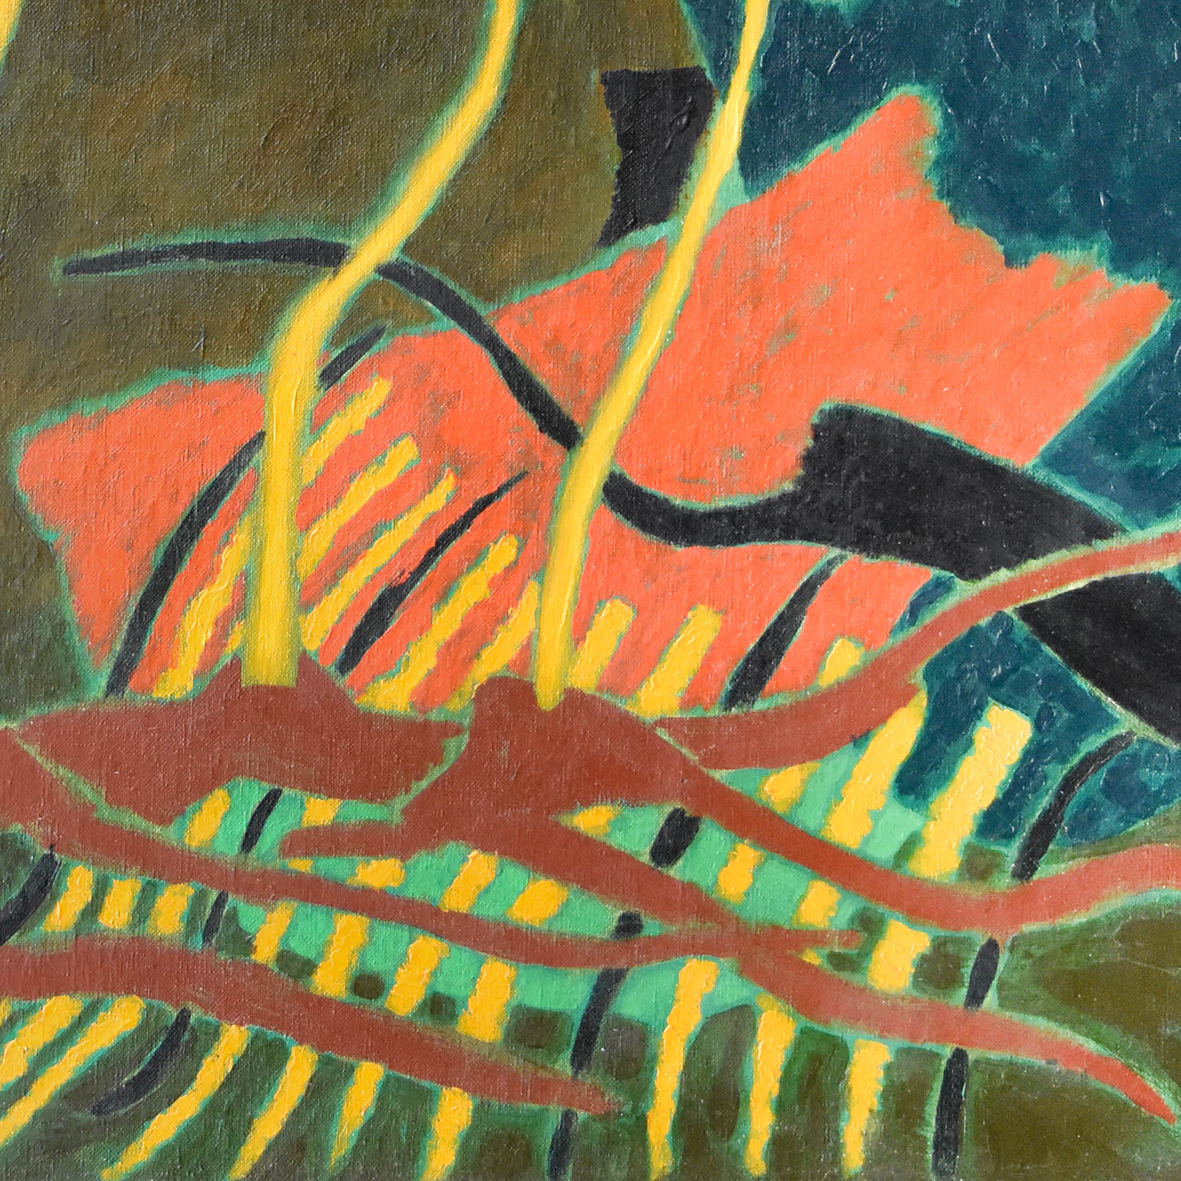 Nashar, Vines, oil on canvas, 64 x 92.5 cm, 1984 (detail)